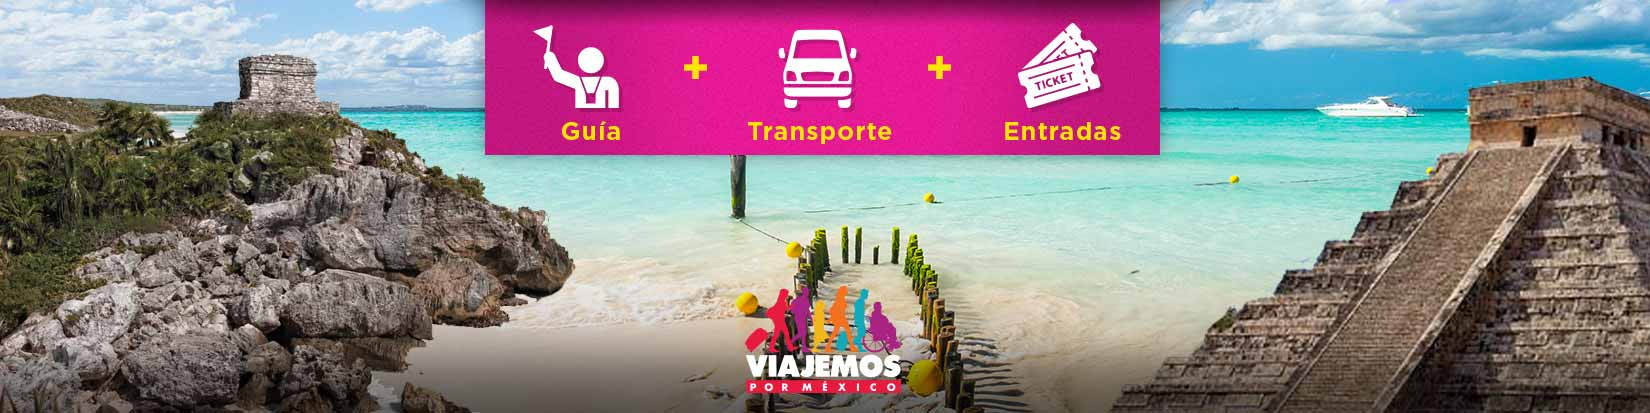 Tours / Excursiones en Cancún y Riviera de hasta 10 hrs